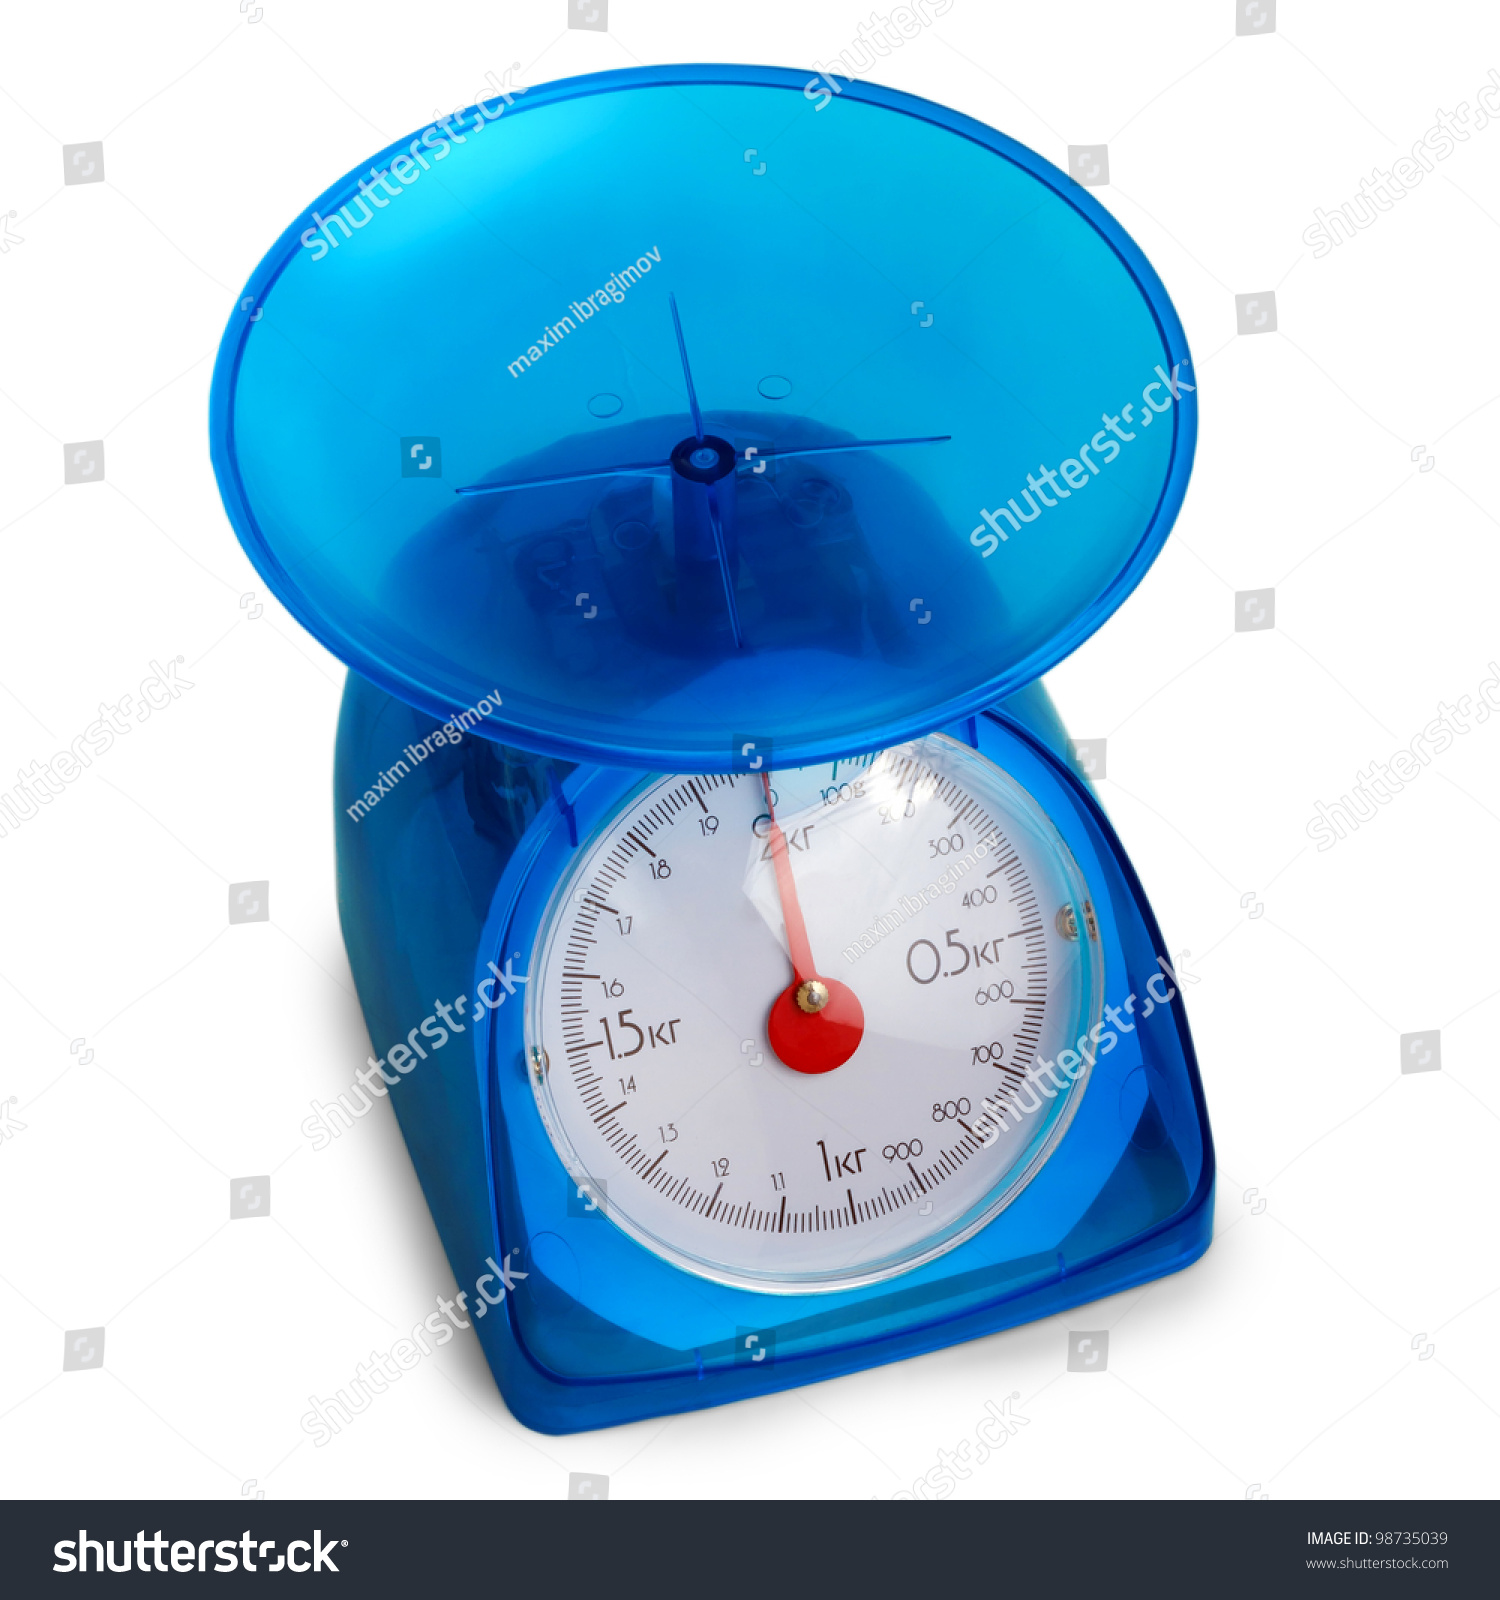 Blue Kitchen Scales: Blue Plastic Kitchen Scales Isolated Stock Photo 98735039